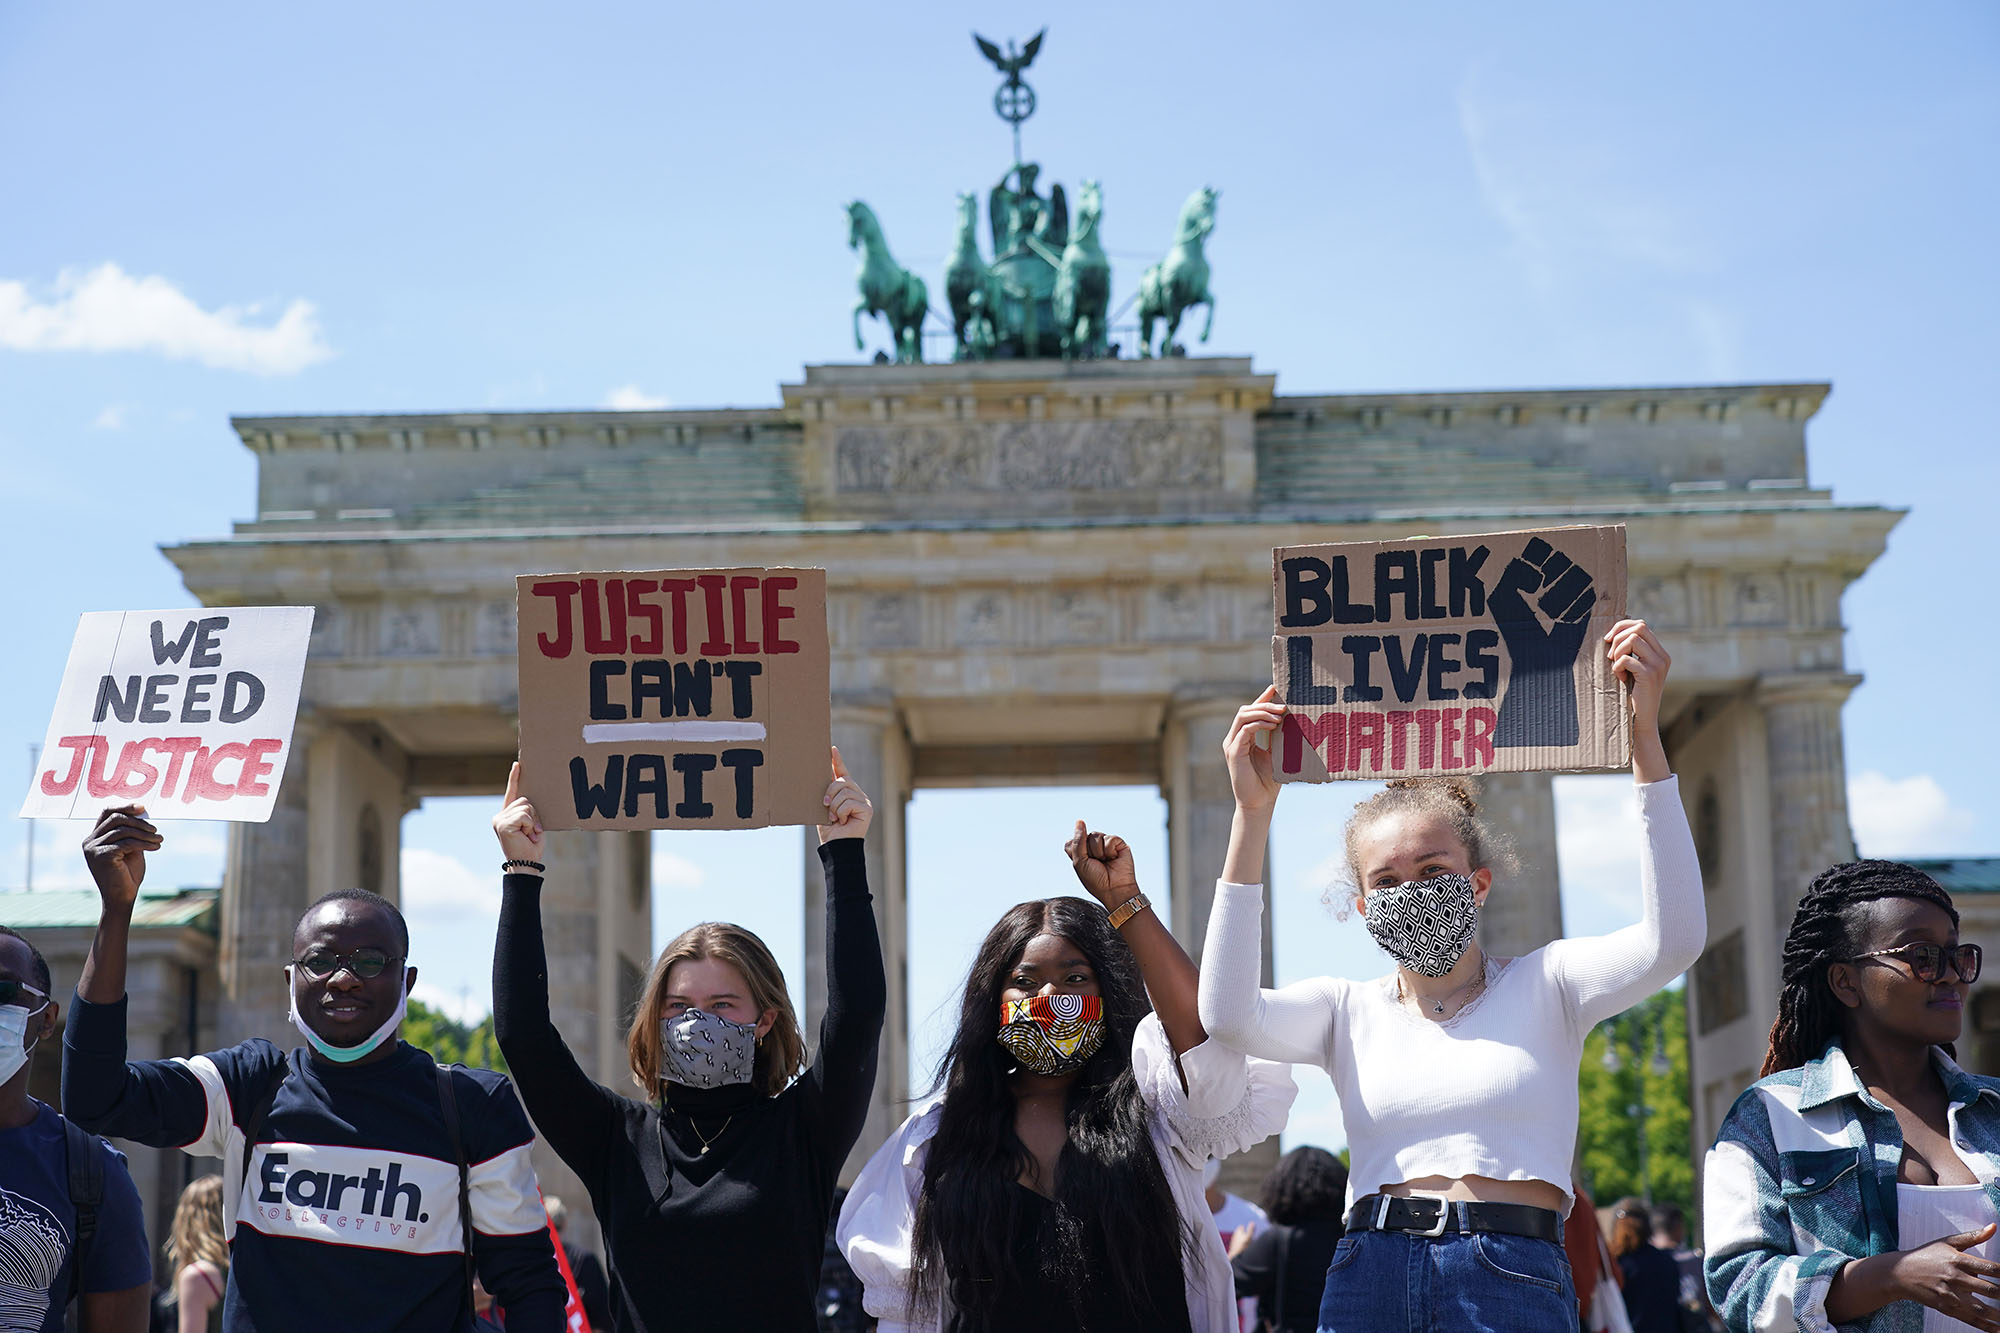 These International Cities Are Showing Up For Black Lives Matter And George Floyd